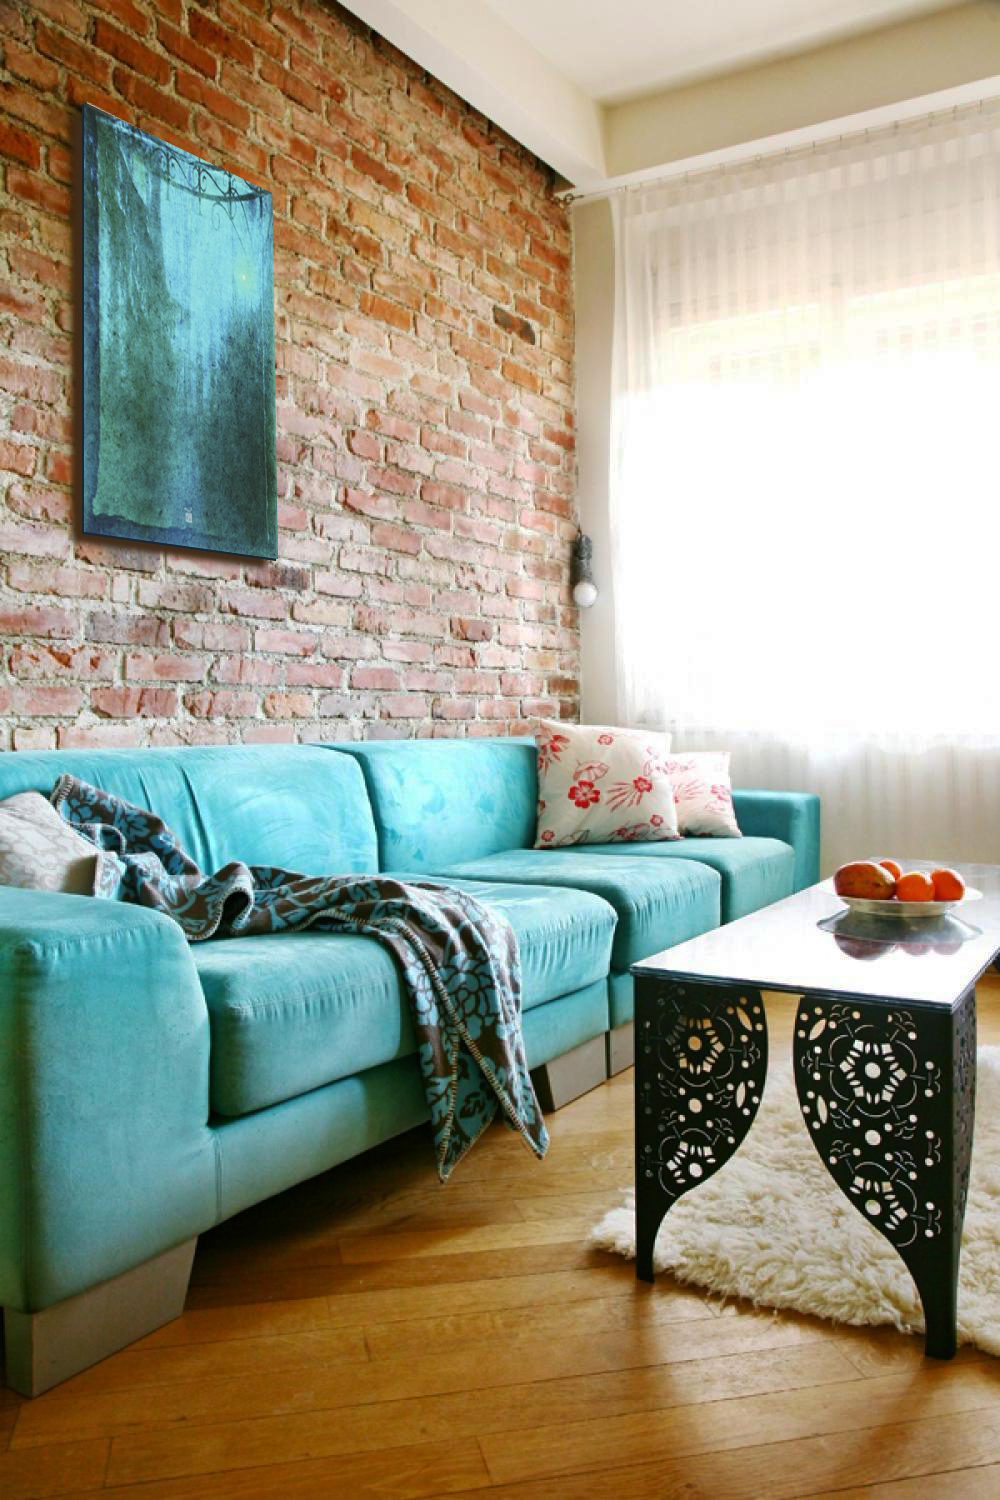 Charming-blue-Sofa-in-Living-Room-with-exposed-brick-wall-look-natural.jpg